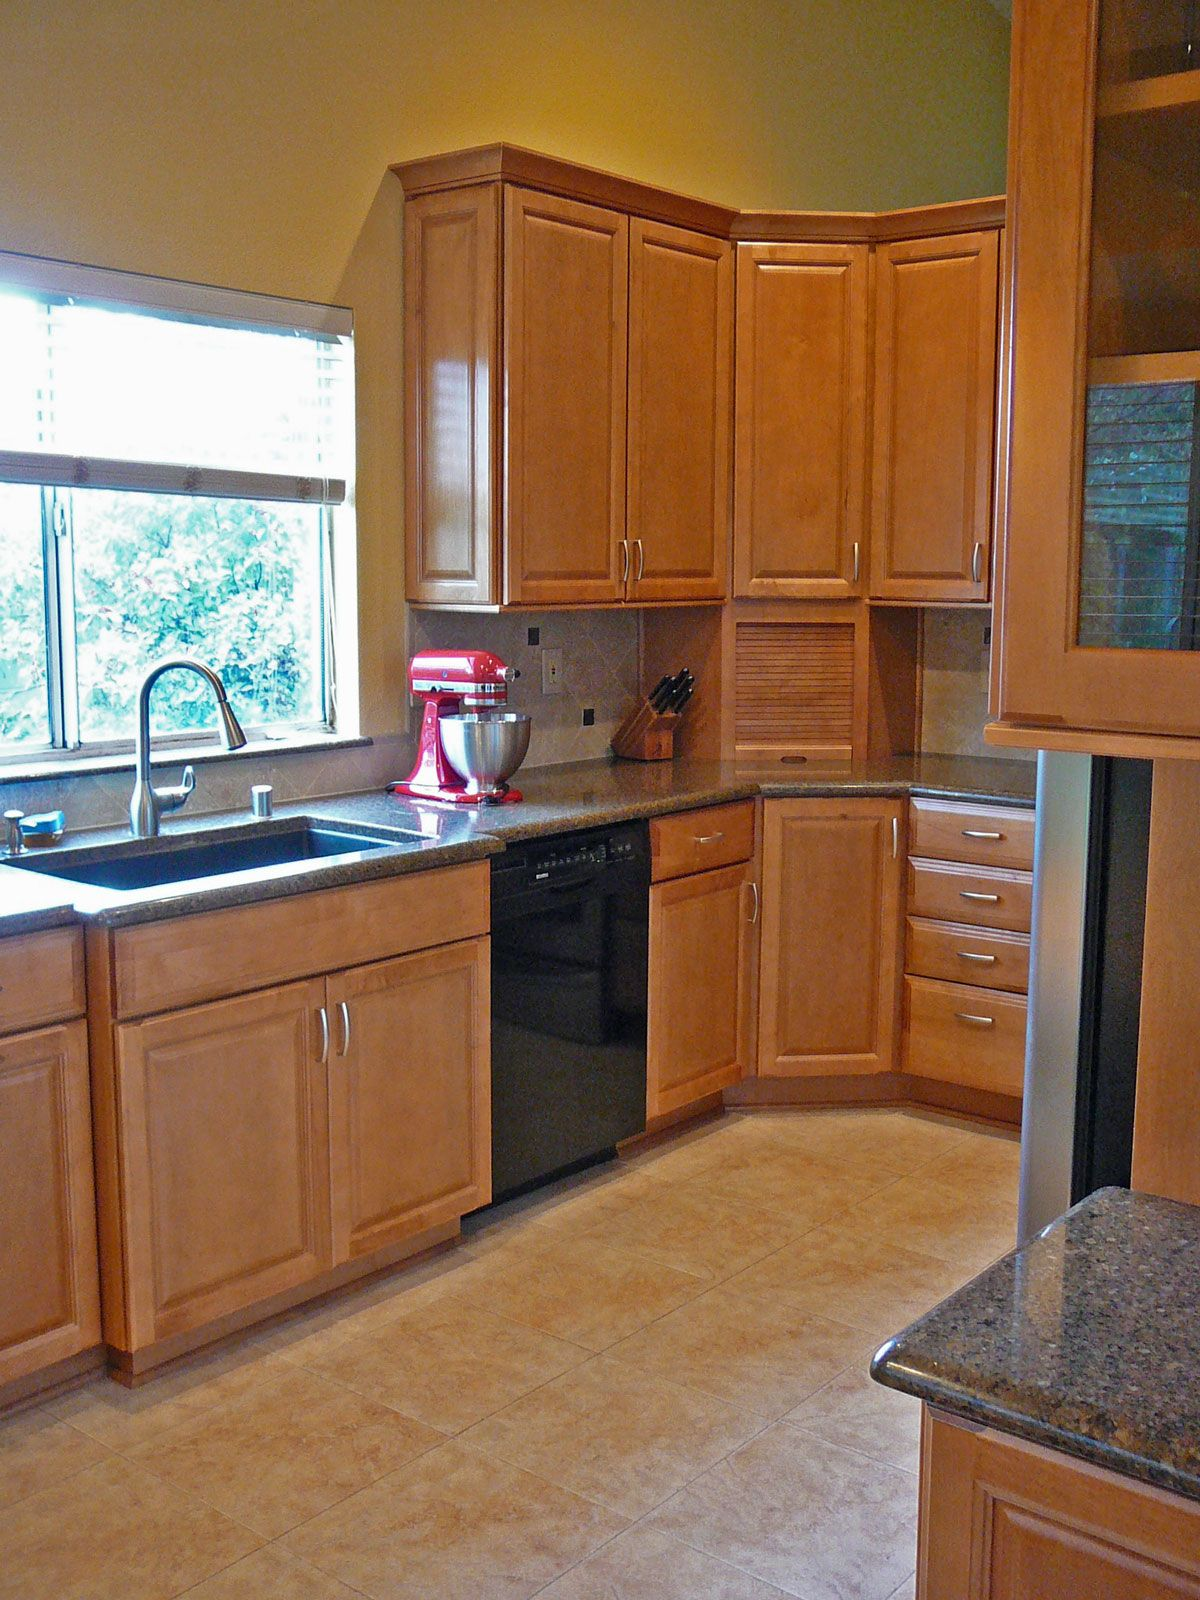 Honey Oak Kitchen Cabinets Here Is Another Kitchen Corner With A